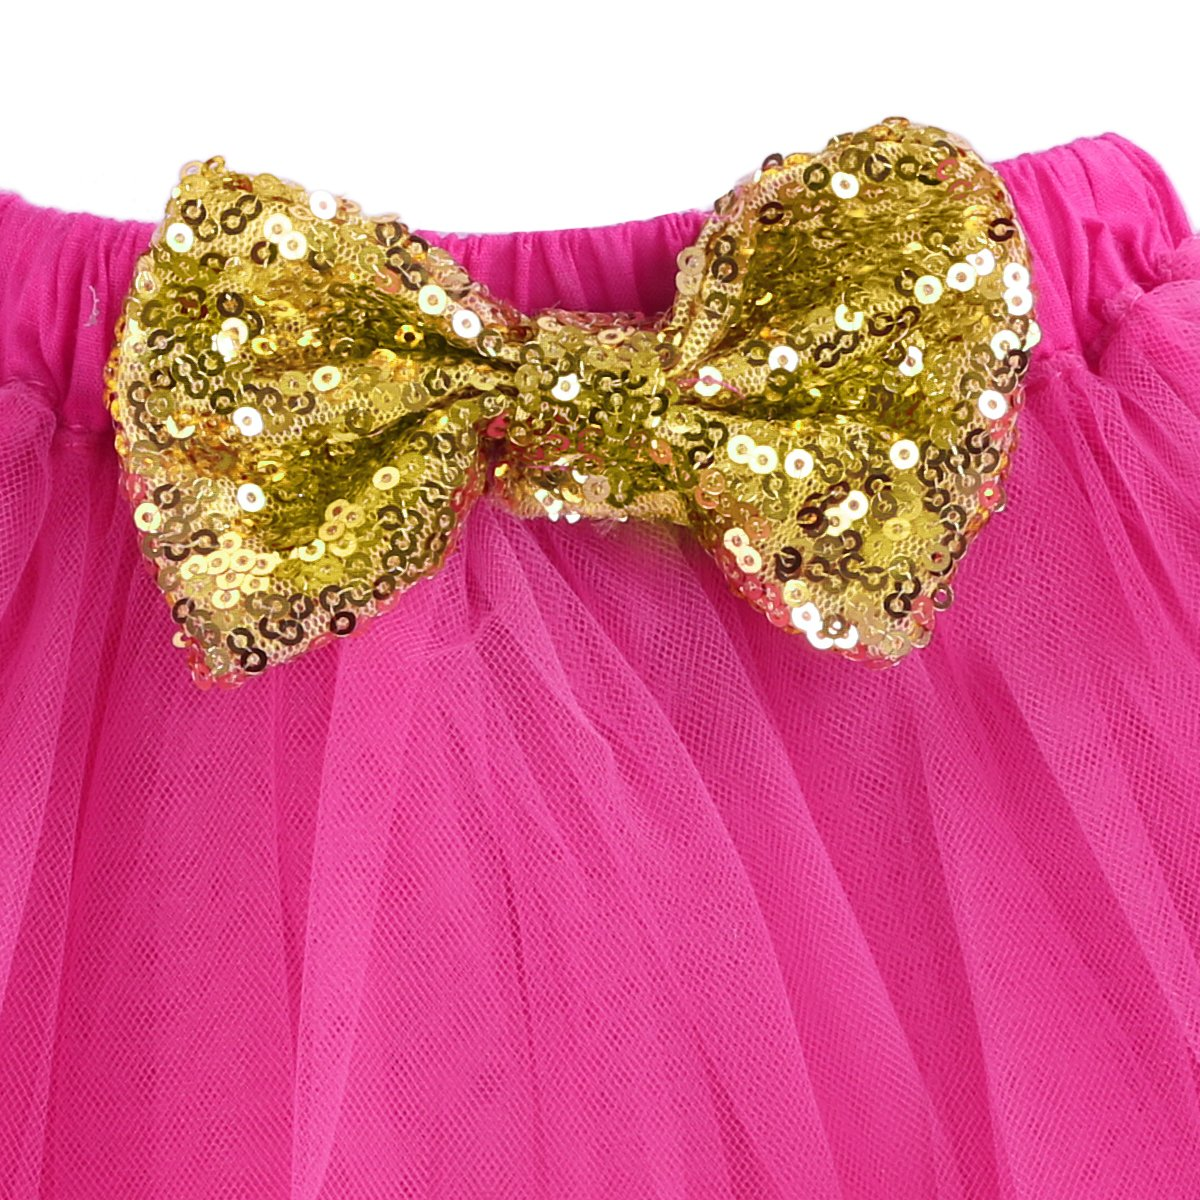 Sequin Bow Headband Princess Party Dress Cake Smash Photo Shoot Costume Clothes OwlFay Toddler Baby Girls Its My 1//2 1st 2nd Birthday Outfits 4PCS Set Romper Tutu Skirt